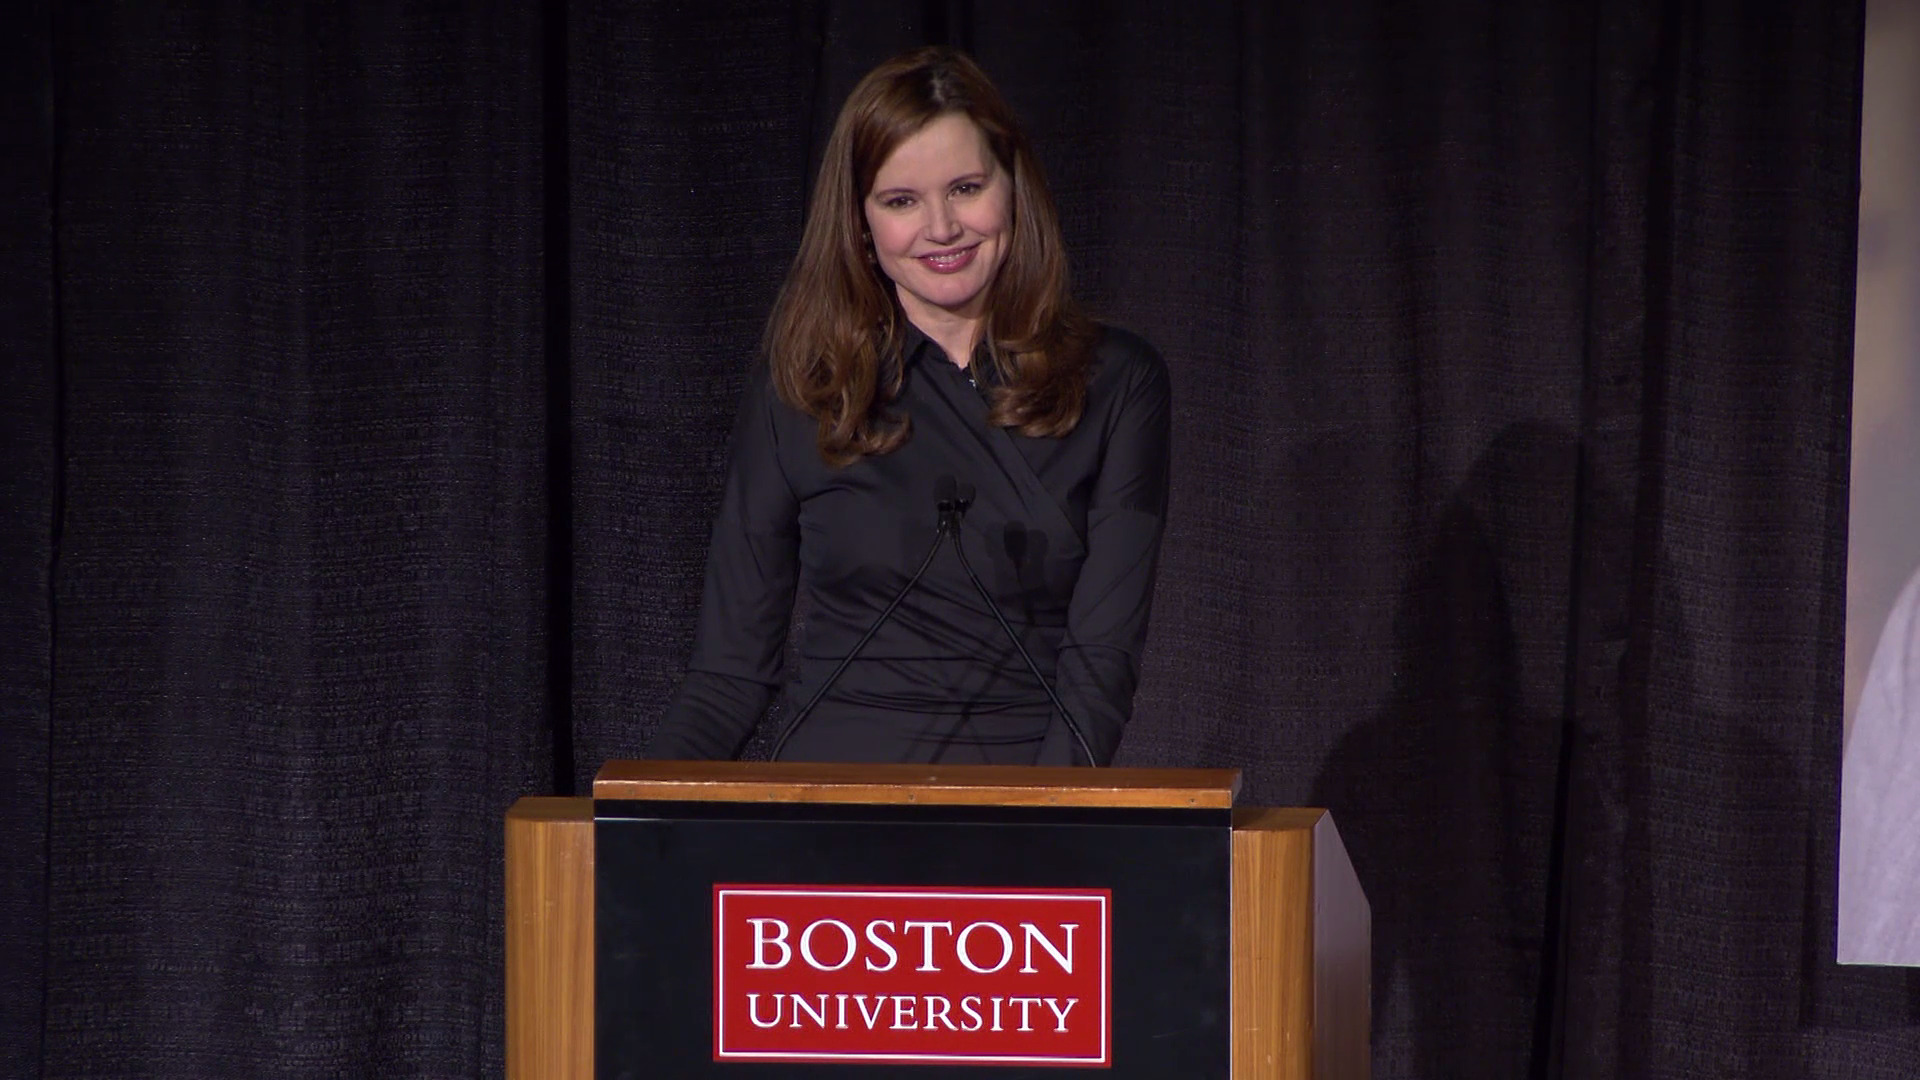 Geena Davis at Boston University